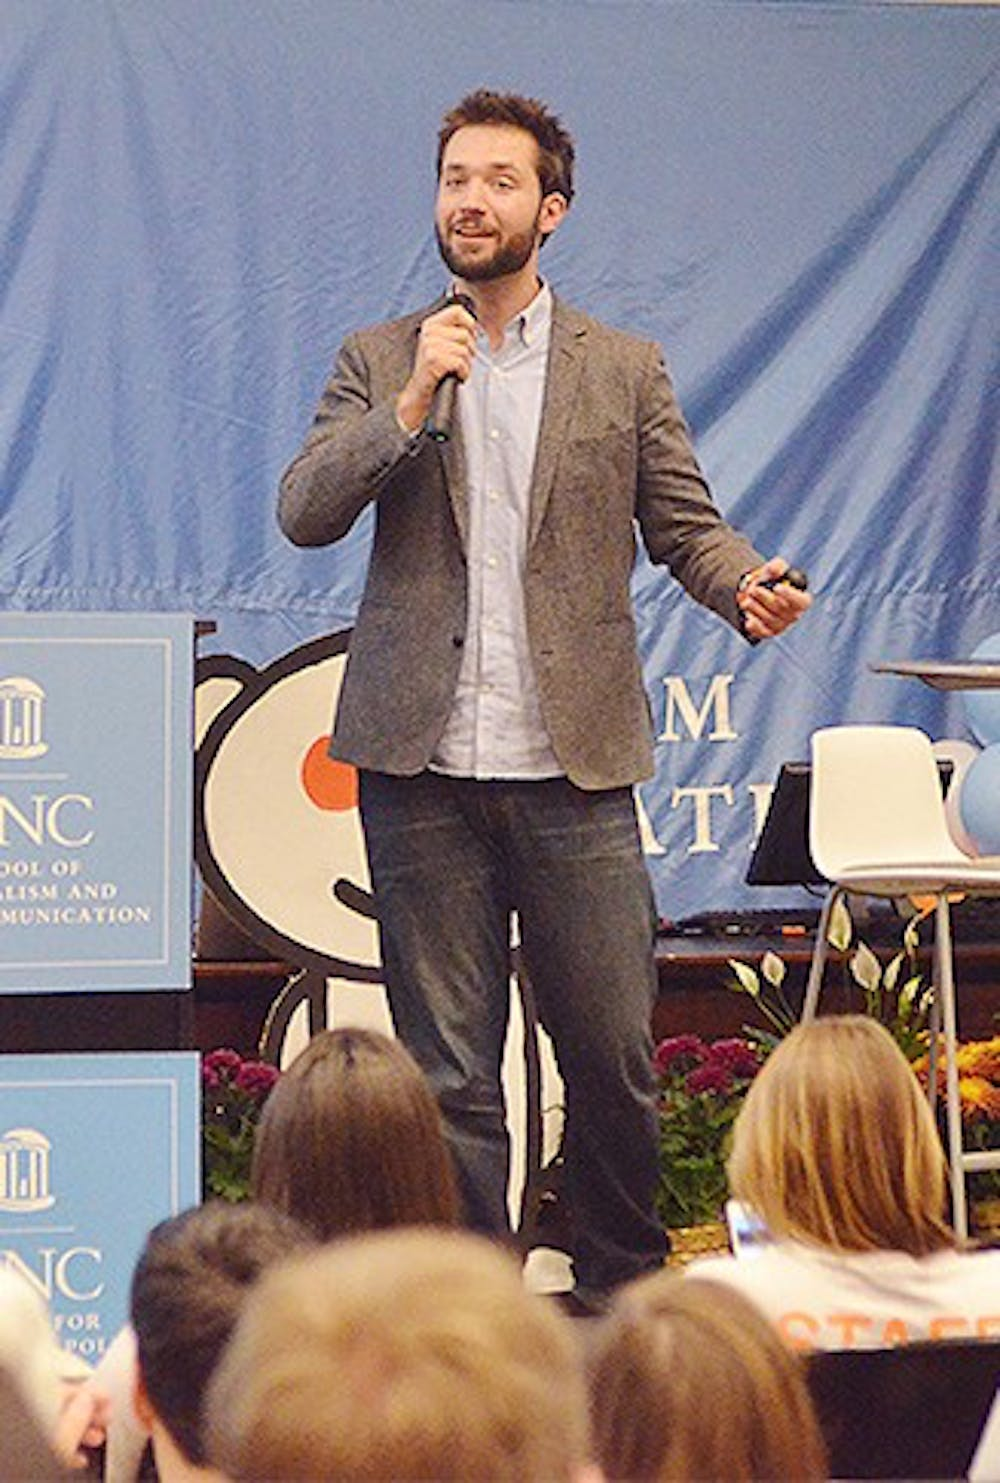 Reddit co-founder Alexis Ohanian visits UNC